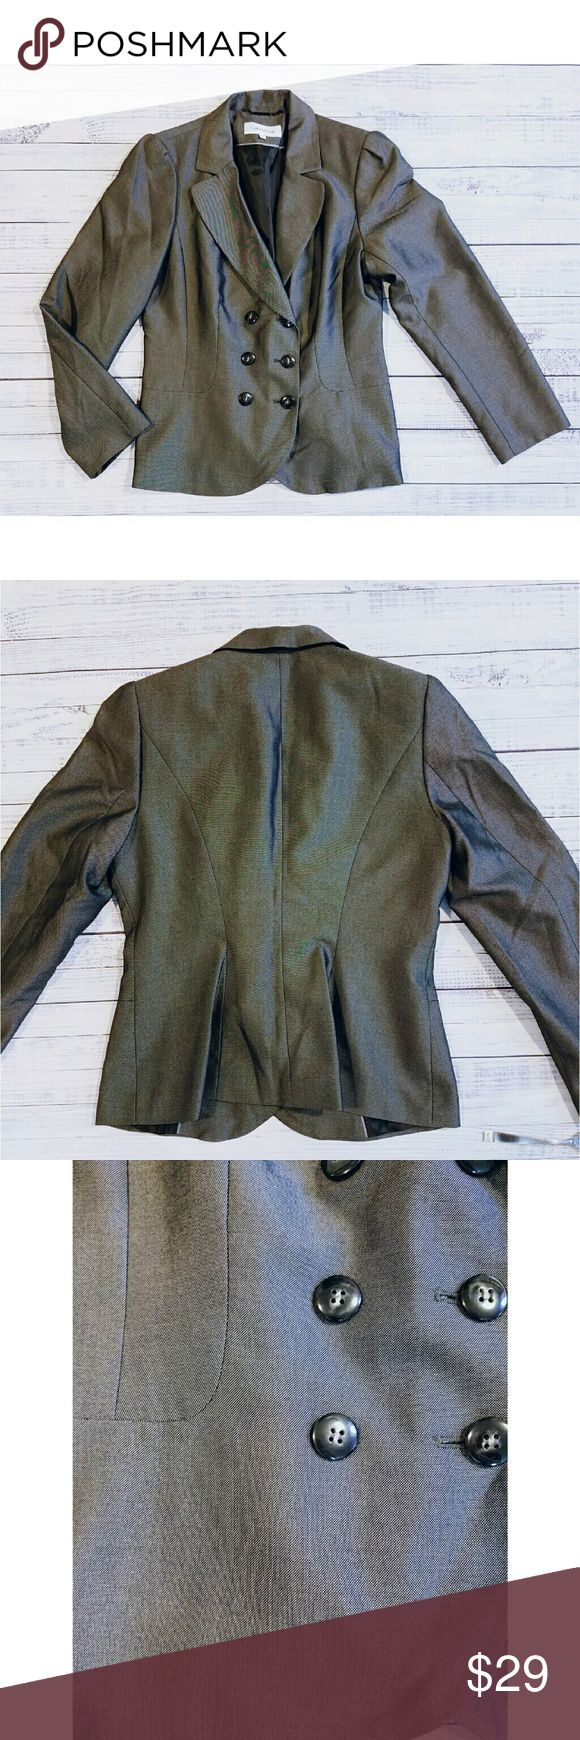 Calvin Klein jacket Gray jacket with a hint of sheen Linned Polyester, rayon 20 inches from armpit to armpit  24 inches long Calvin Klein Jackets & Coats Blazers